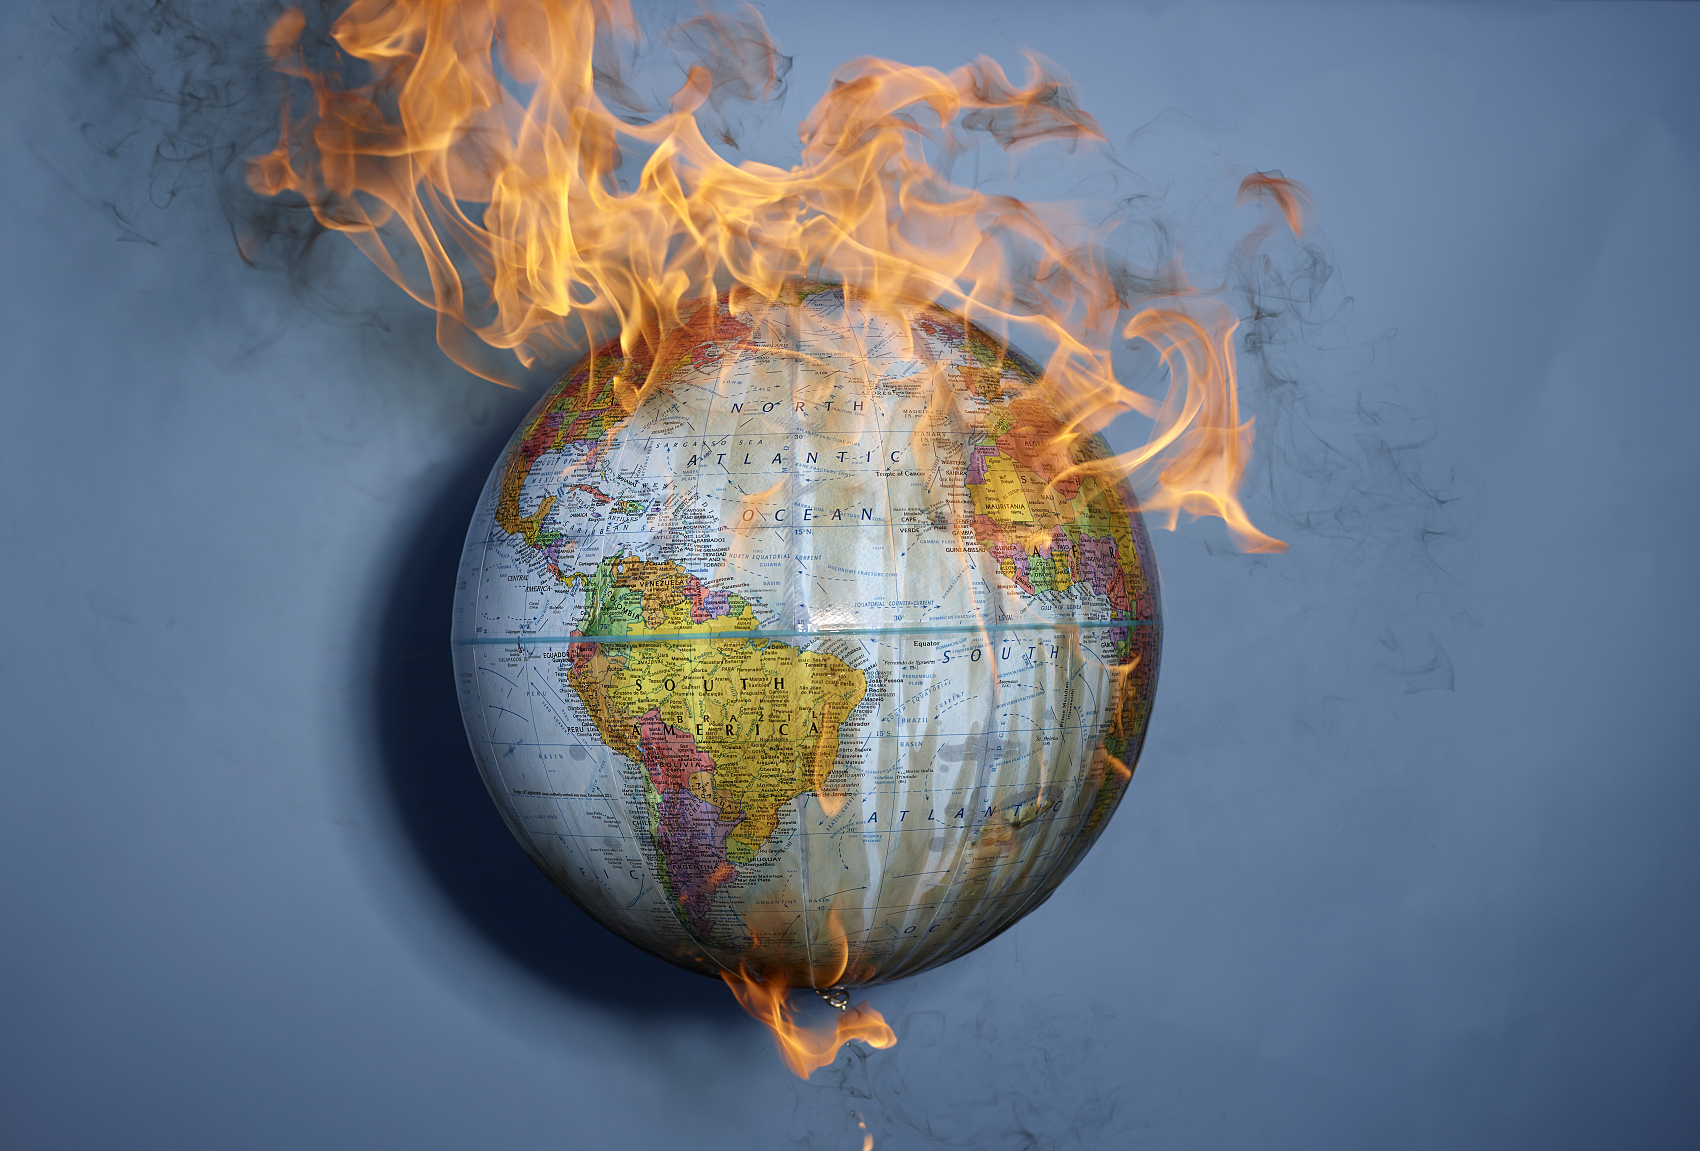 Bonn offers scant relief from climate change